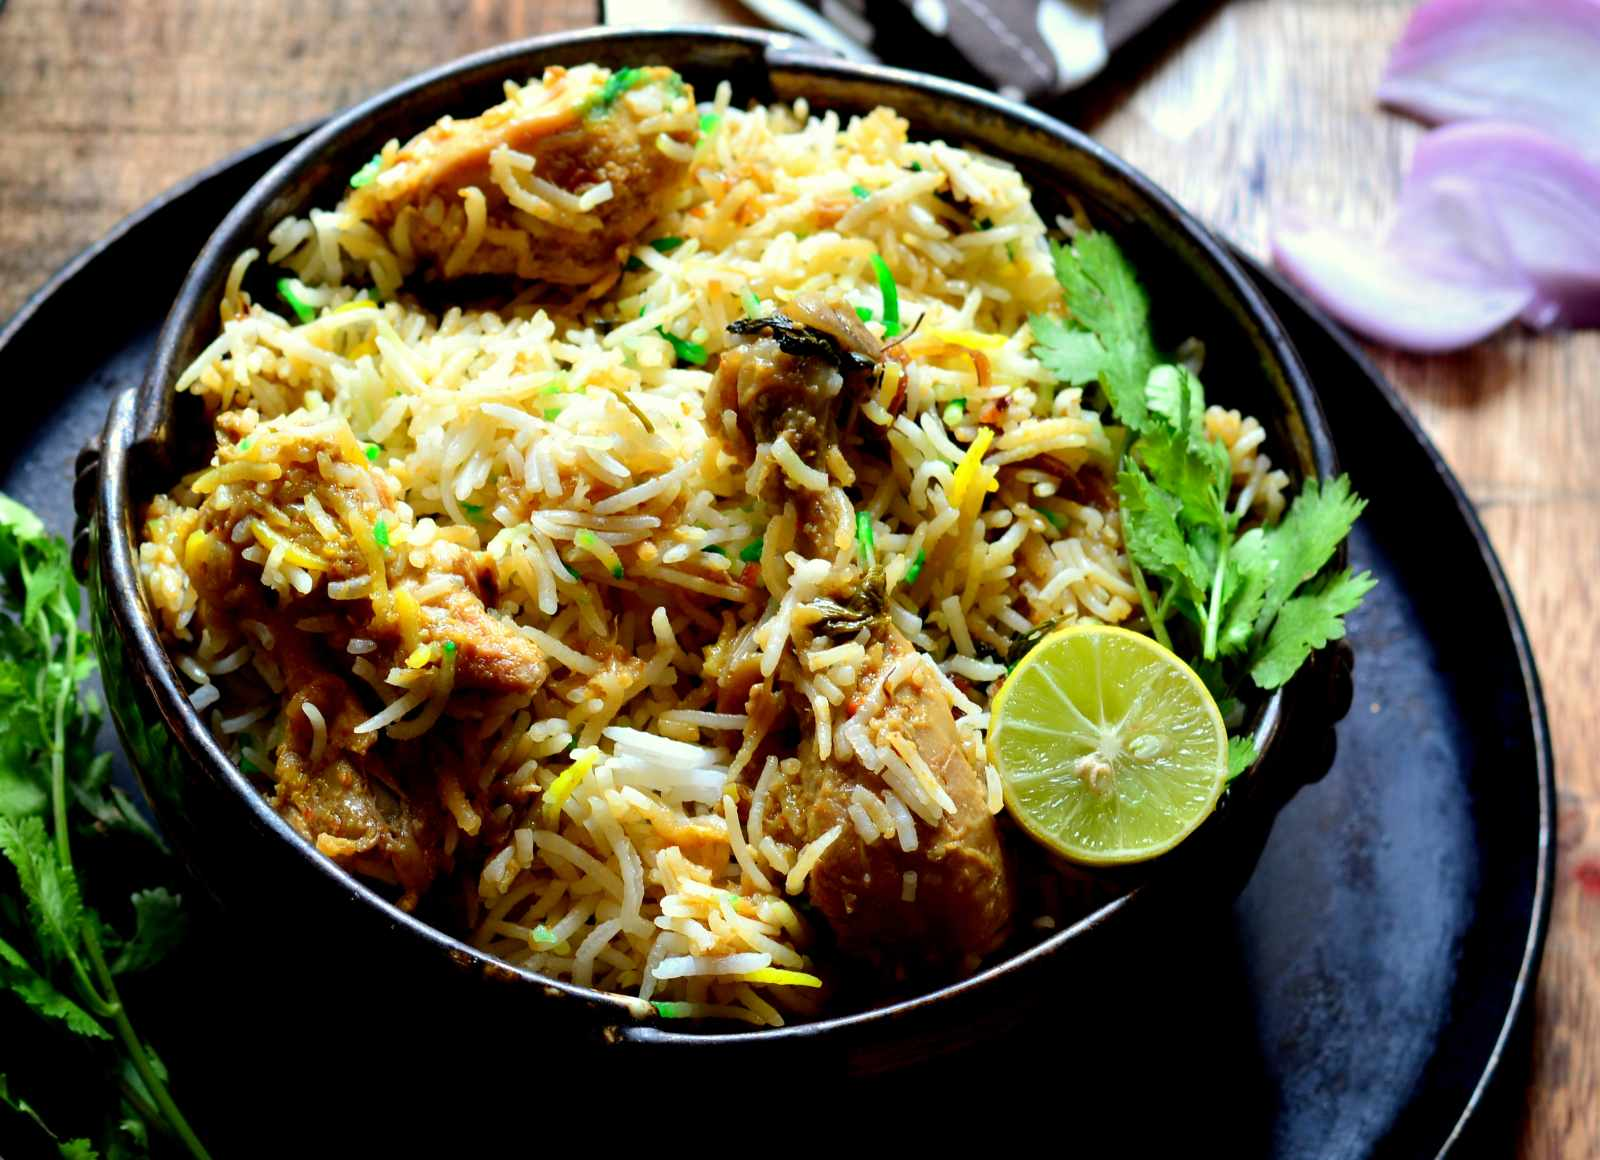 Lucknowi murgh biryani recipe by archanas kitchen lucknowi murgh biryani recipe awadhi style chicken biryani forumfinder Images